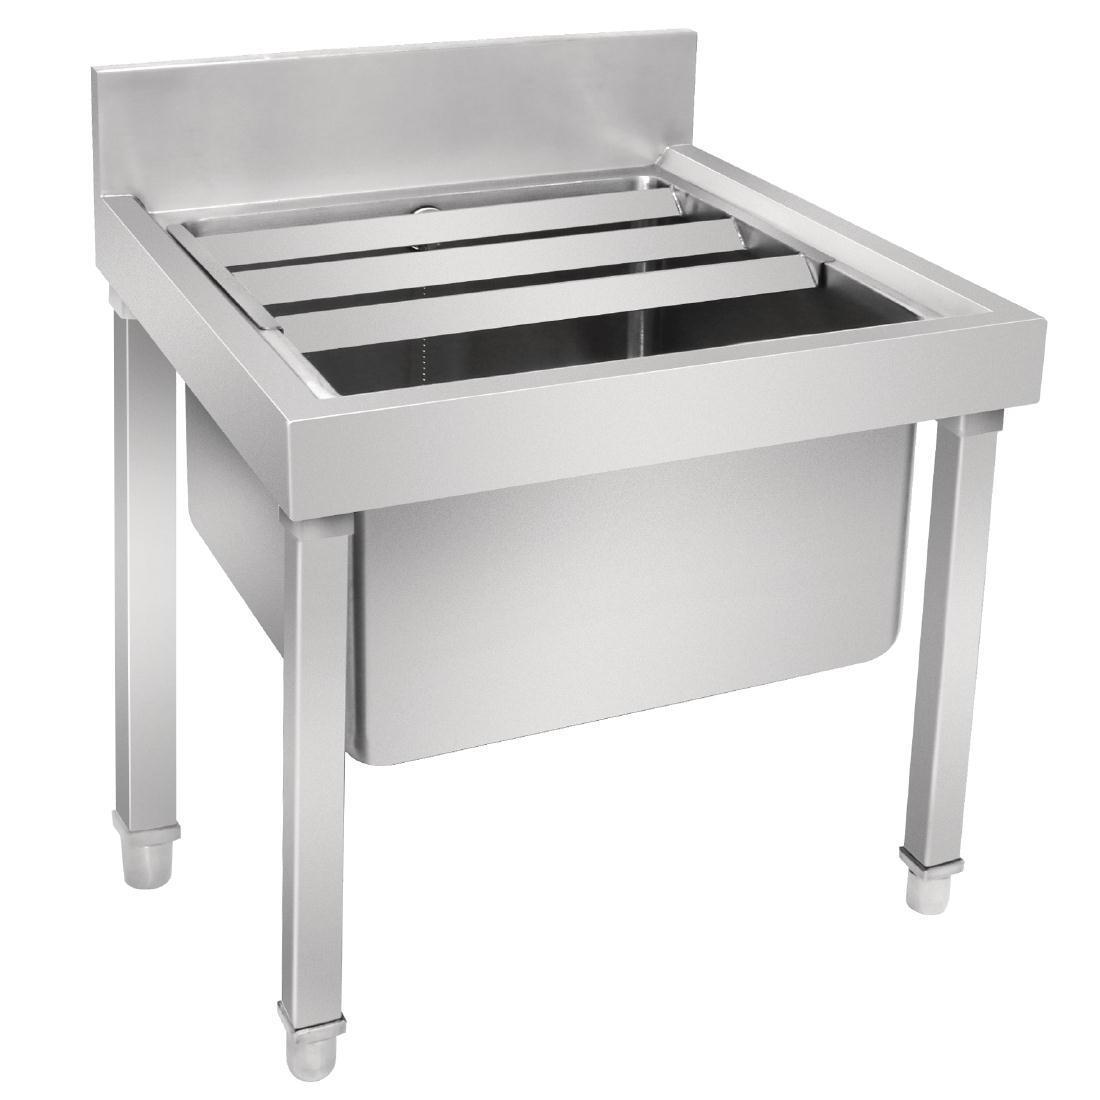 Vogue Stainless Steel Mop Sink - Each - GL281